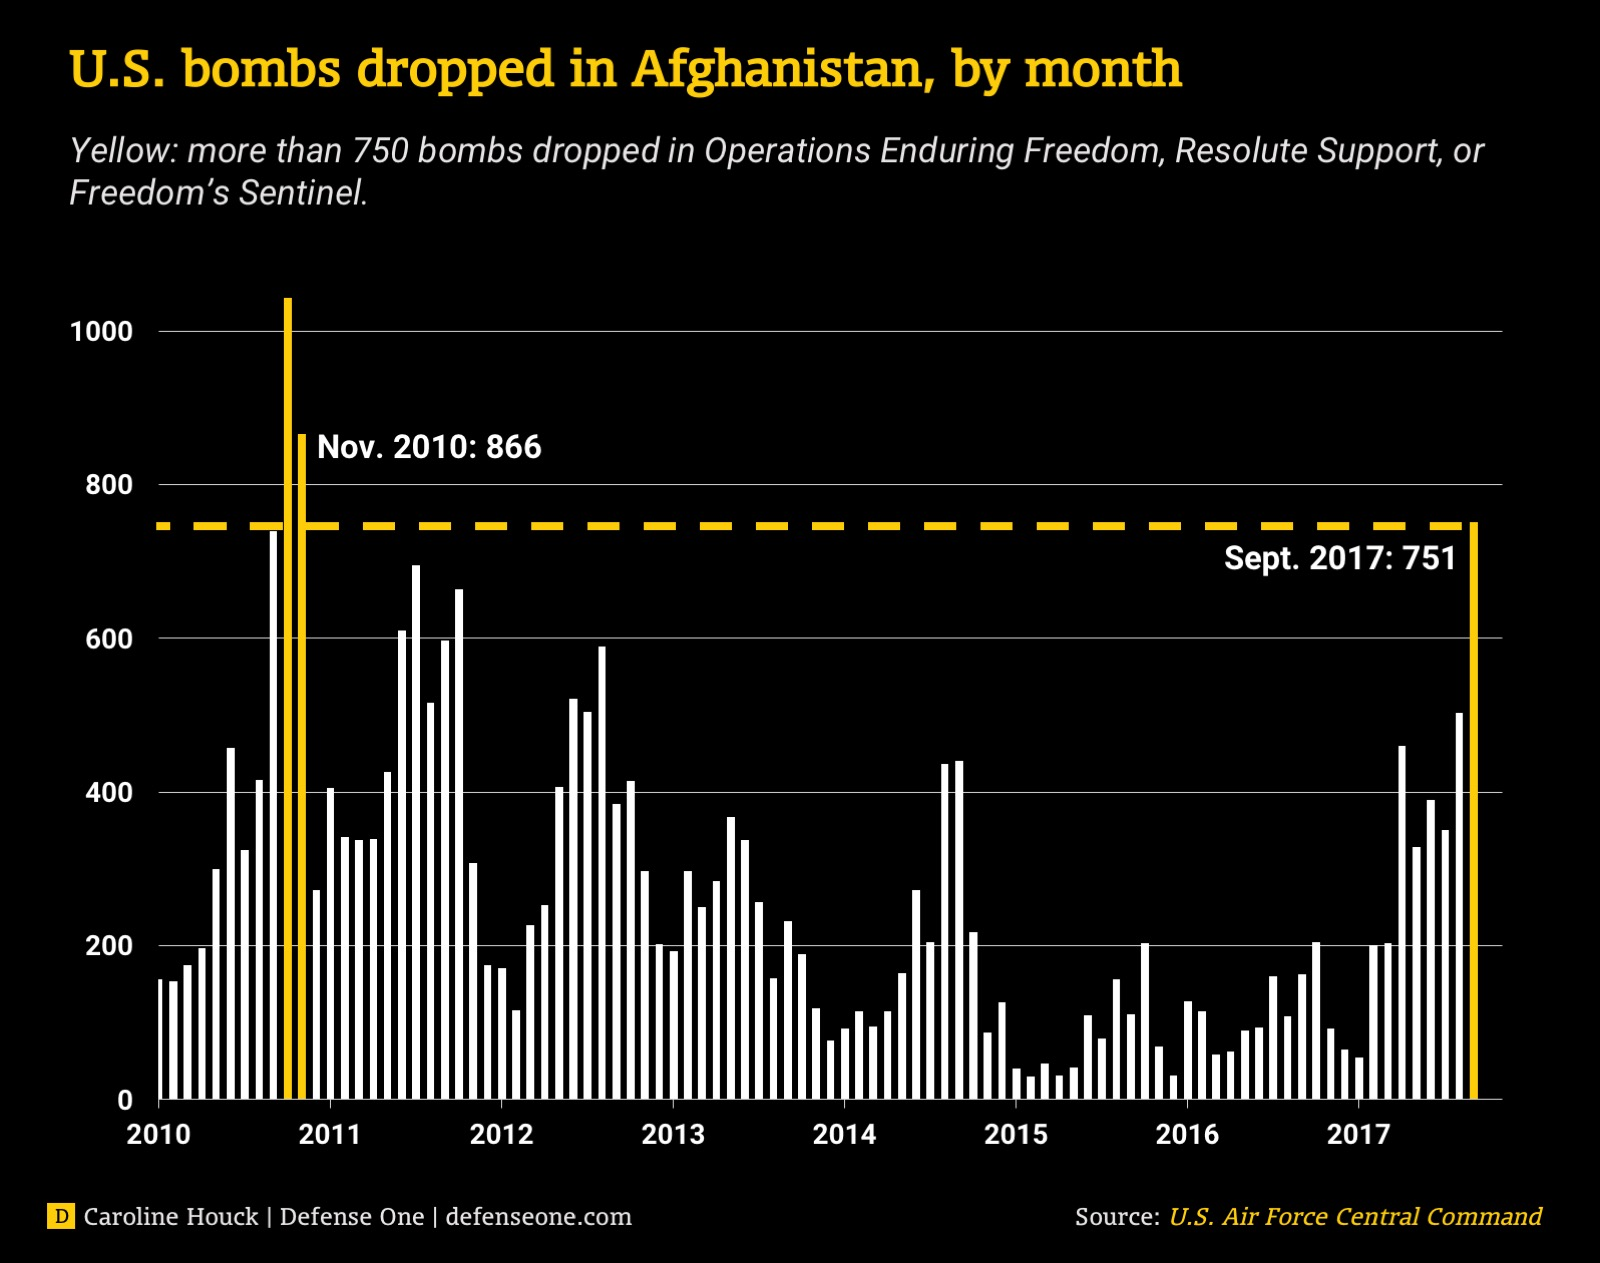 The last time the U.S. Air Force dropped more than 700 bombs in one month in support of operations Enduring Freedom, Resolute Support or Freedom's Sentinel, was in 2010.